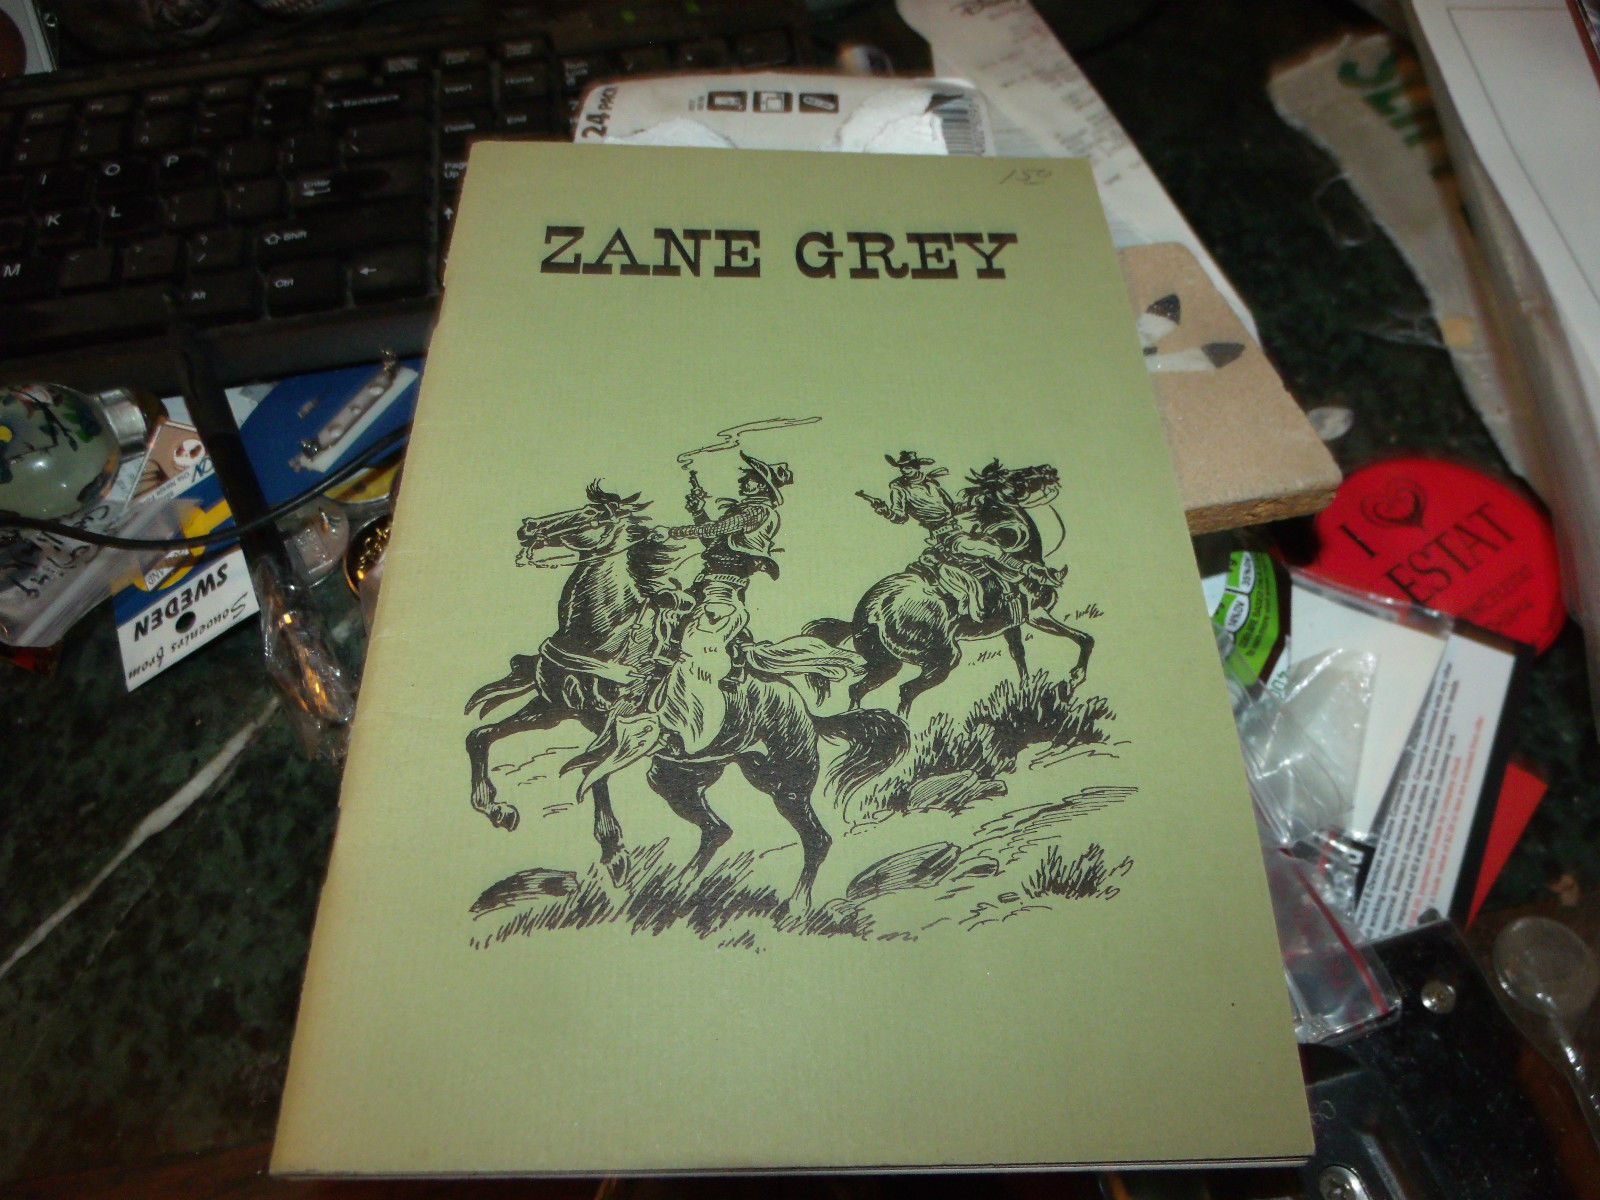 ZANE GREY BY NORRIS F SCHNEIDER 1967 3RD PRINTING SOFTCOVER